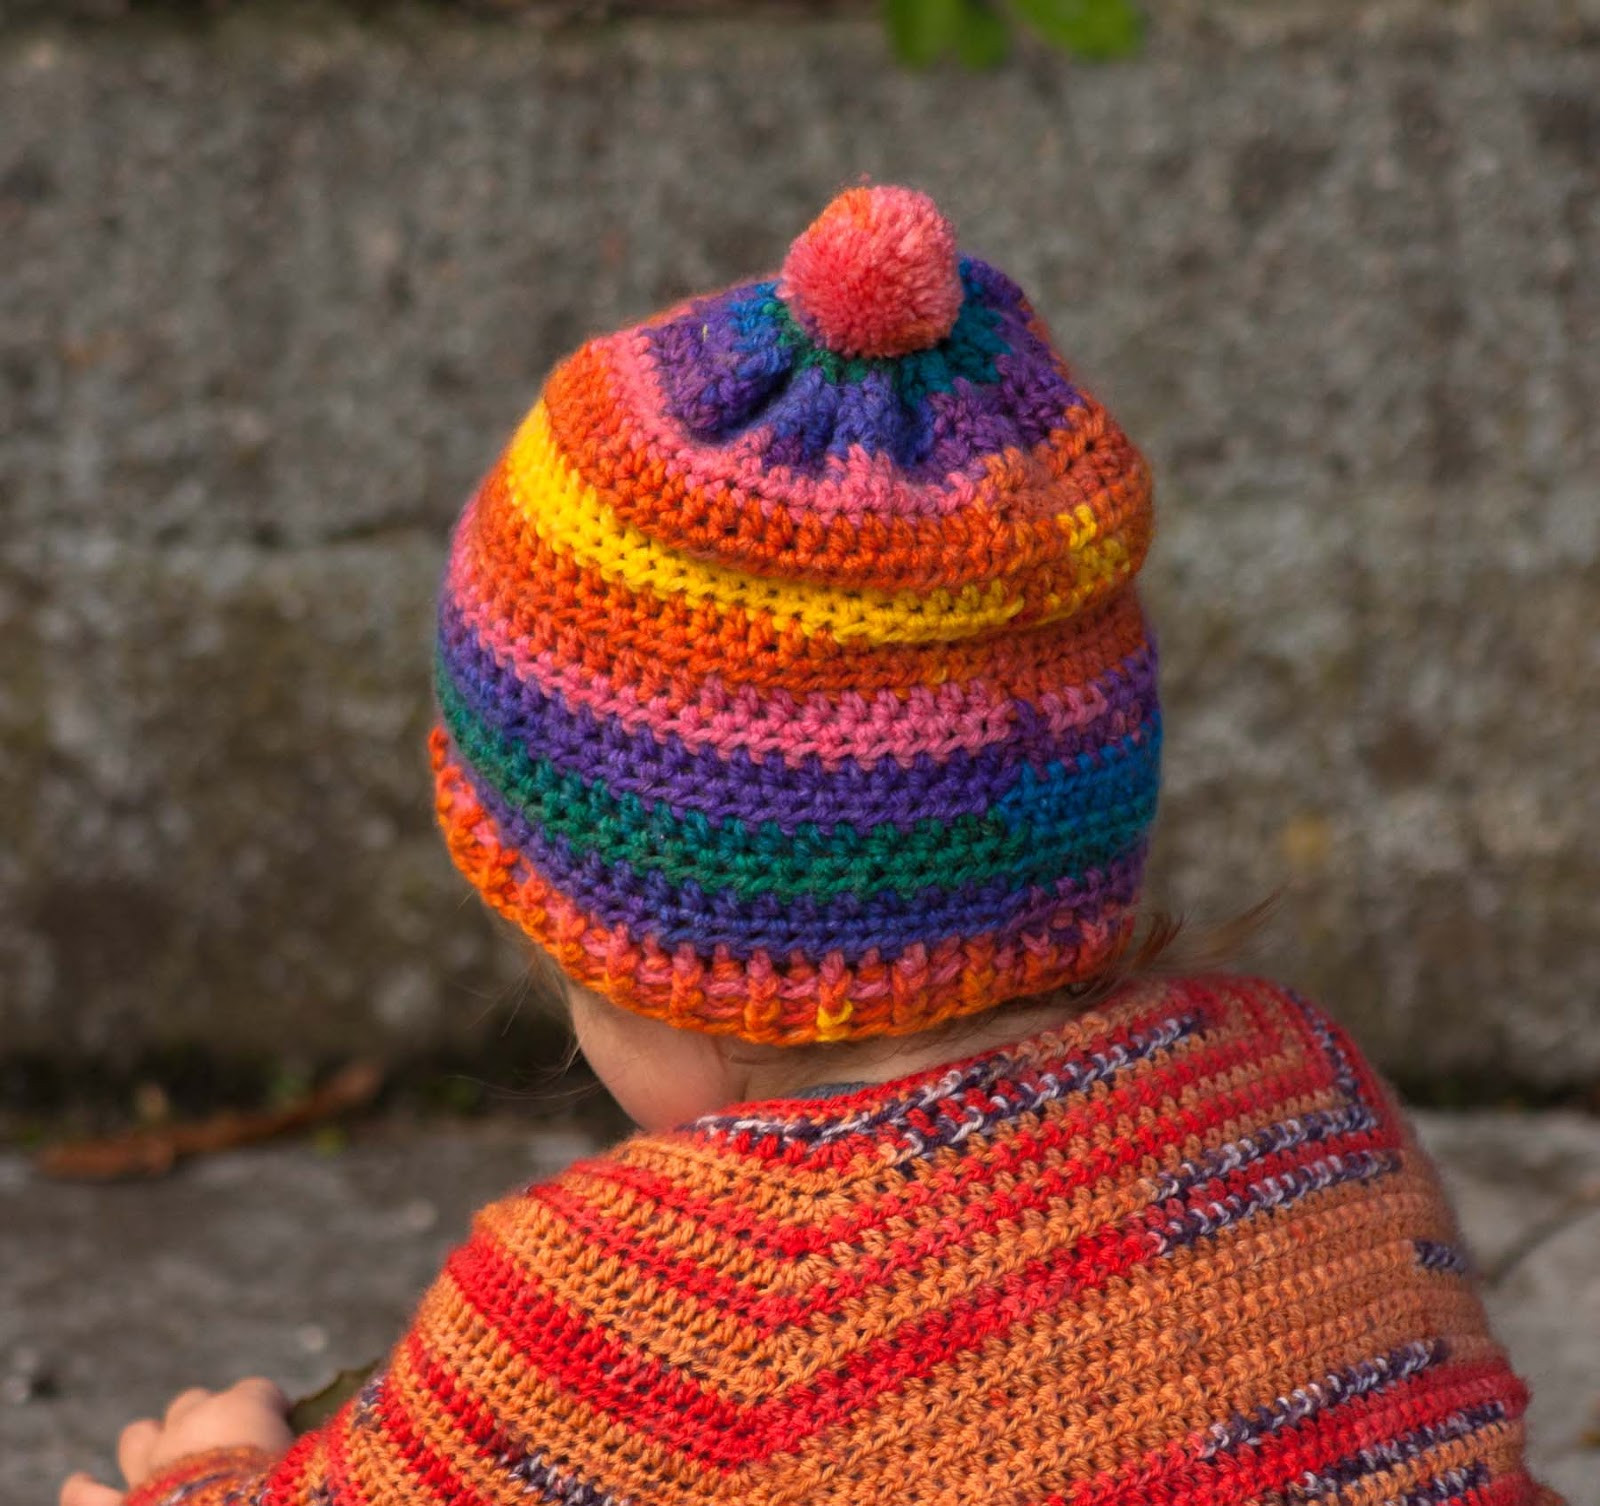 Easy Crochet Hat Inspirational Days Of Yarning Quick and Easy Crochet Hat Free Pattern Of Delightful 50 Models Easy Crochet Hat